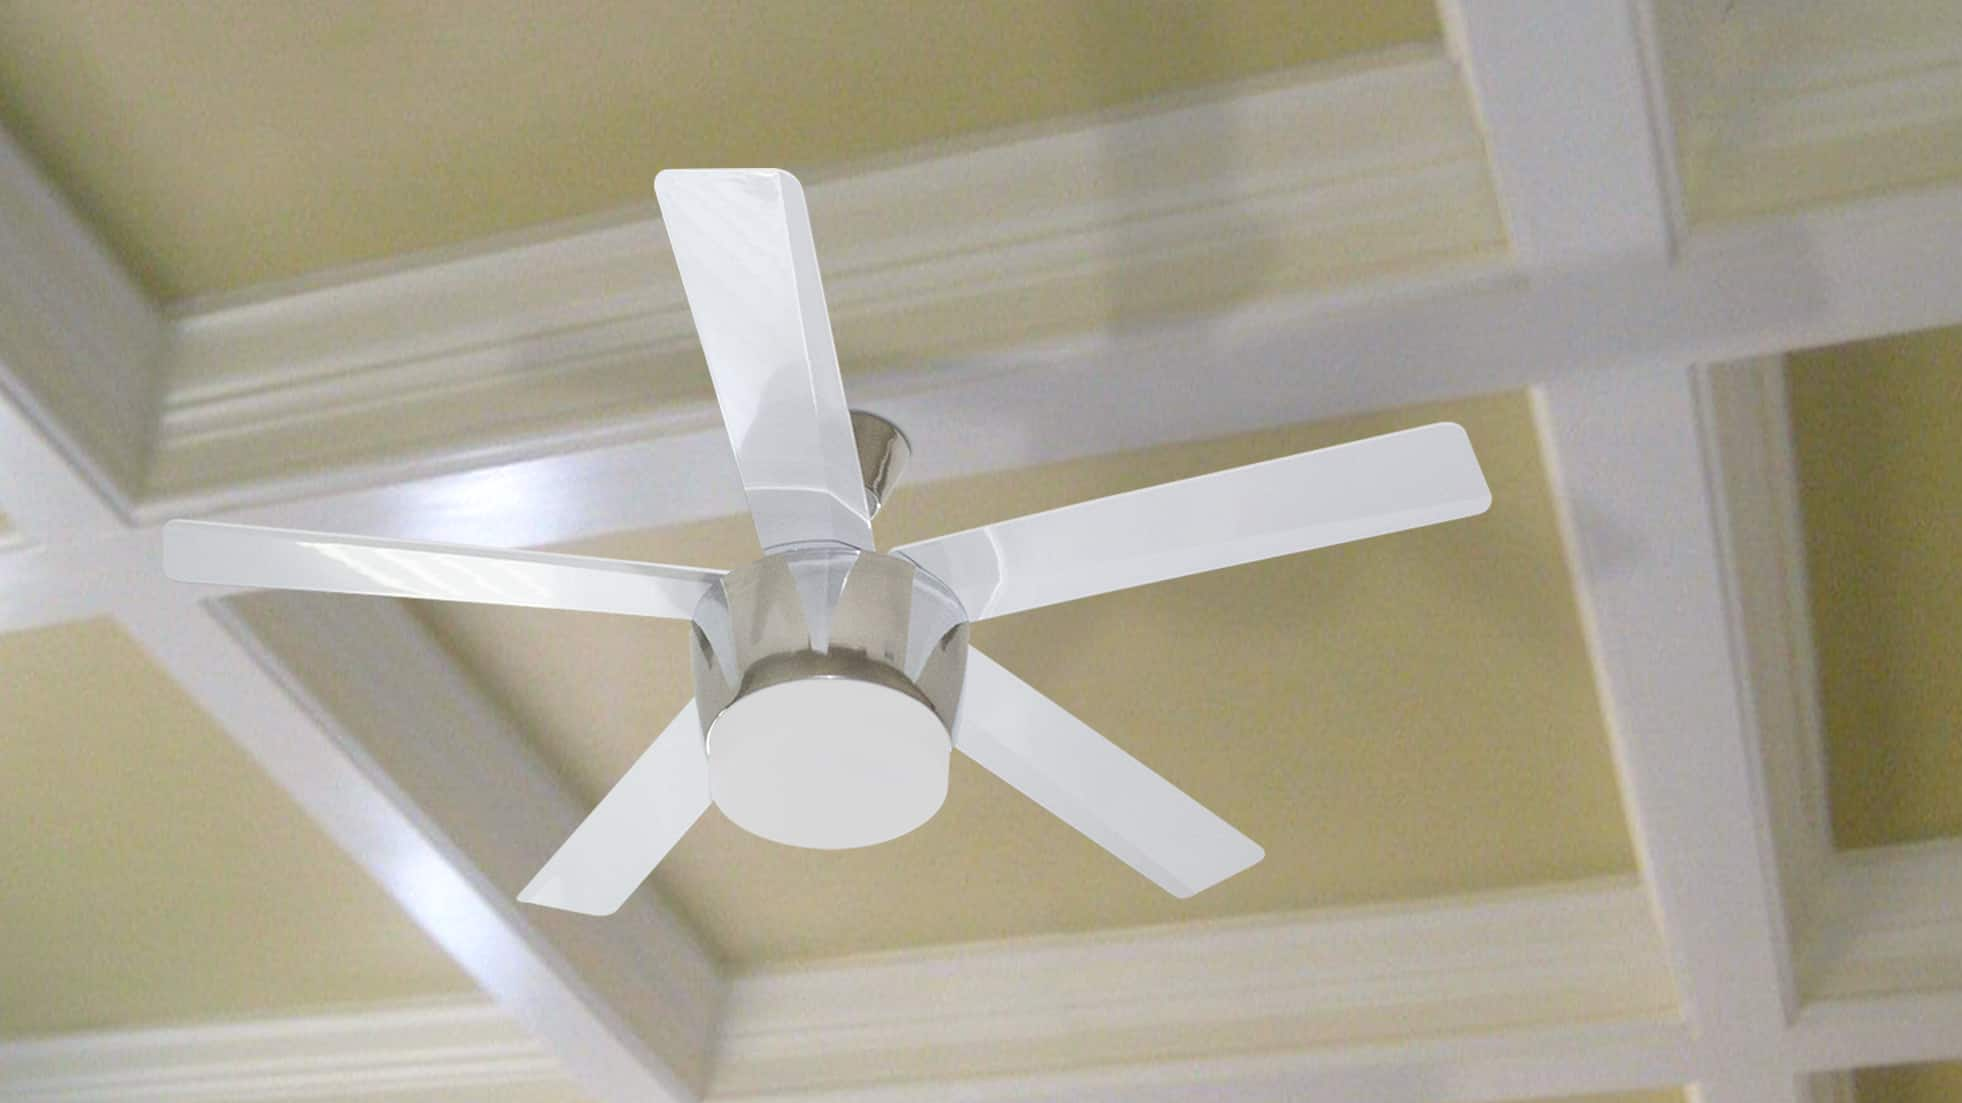 Home Decorations Ceiling Fans Home Decorators Collection Merwry 52 Quot Led Indoor Ceiling